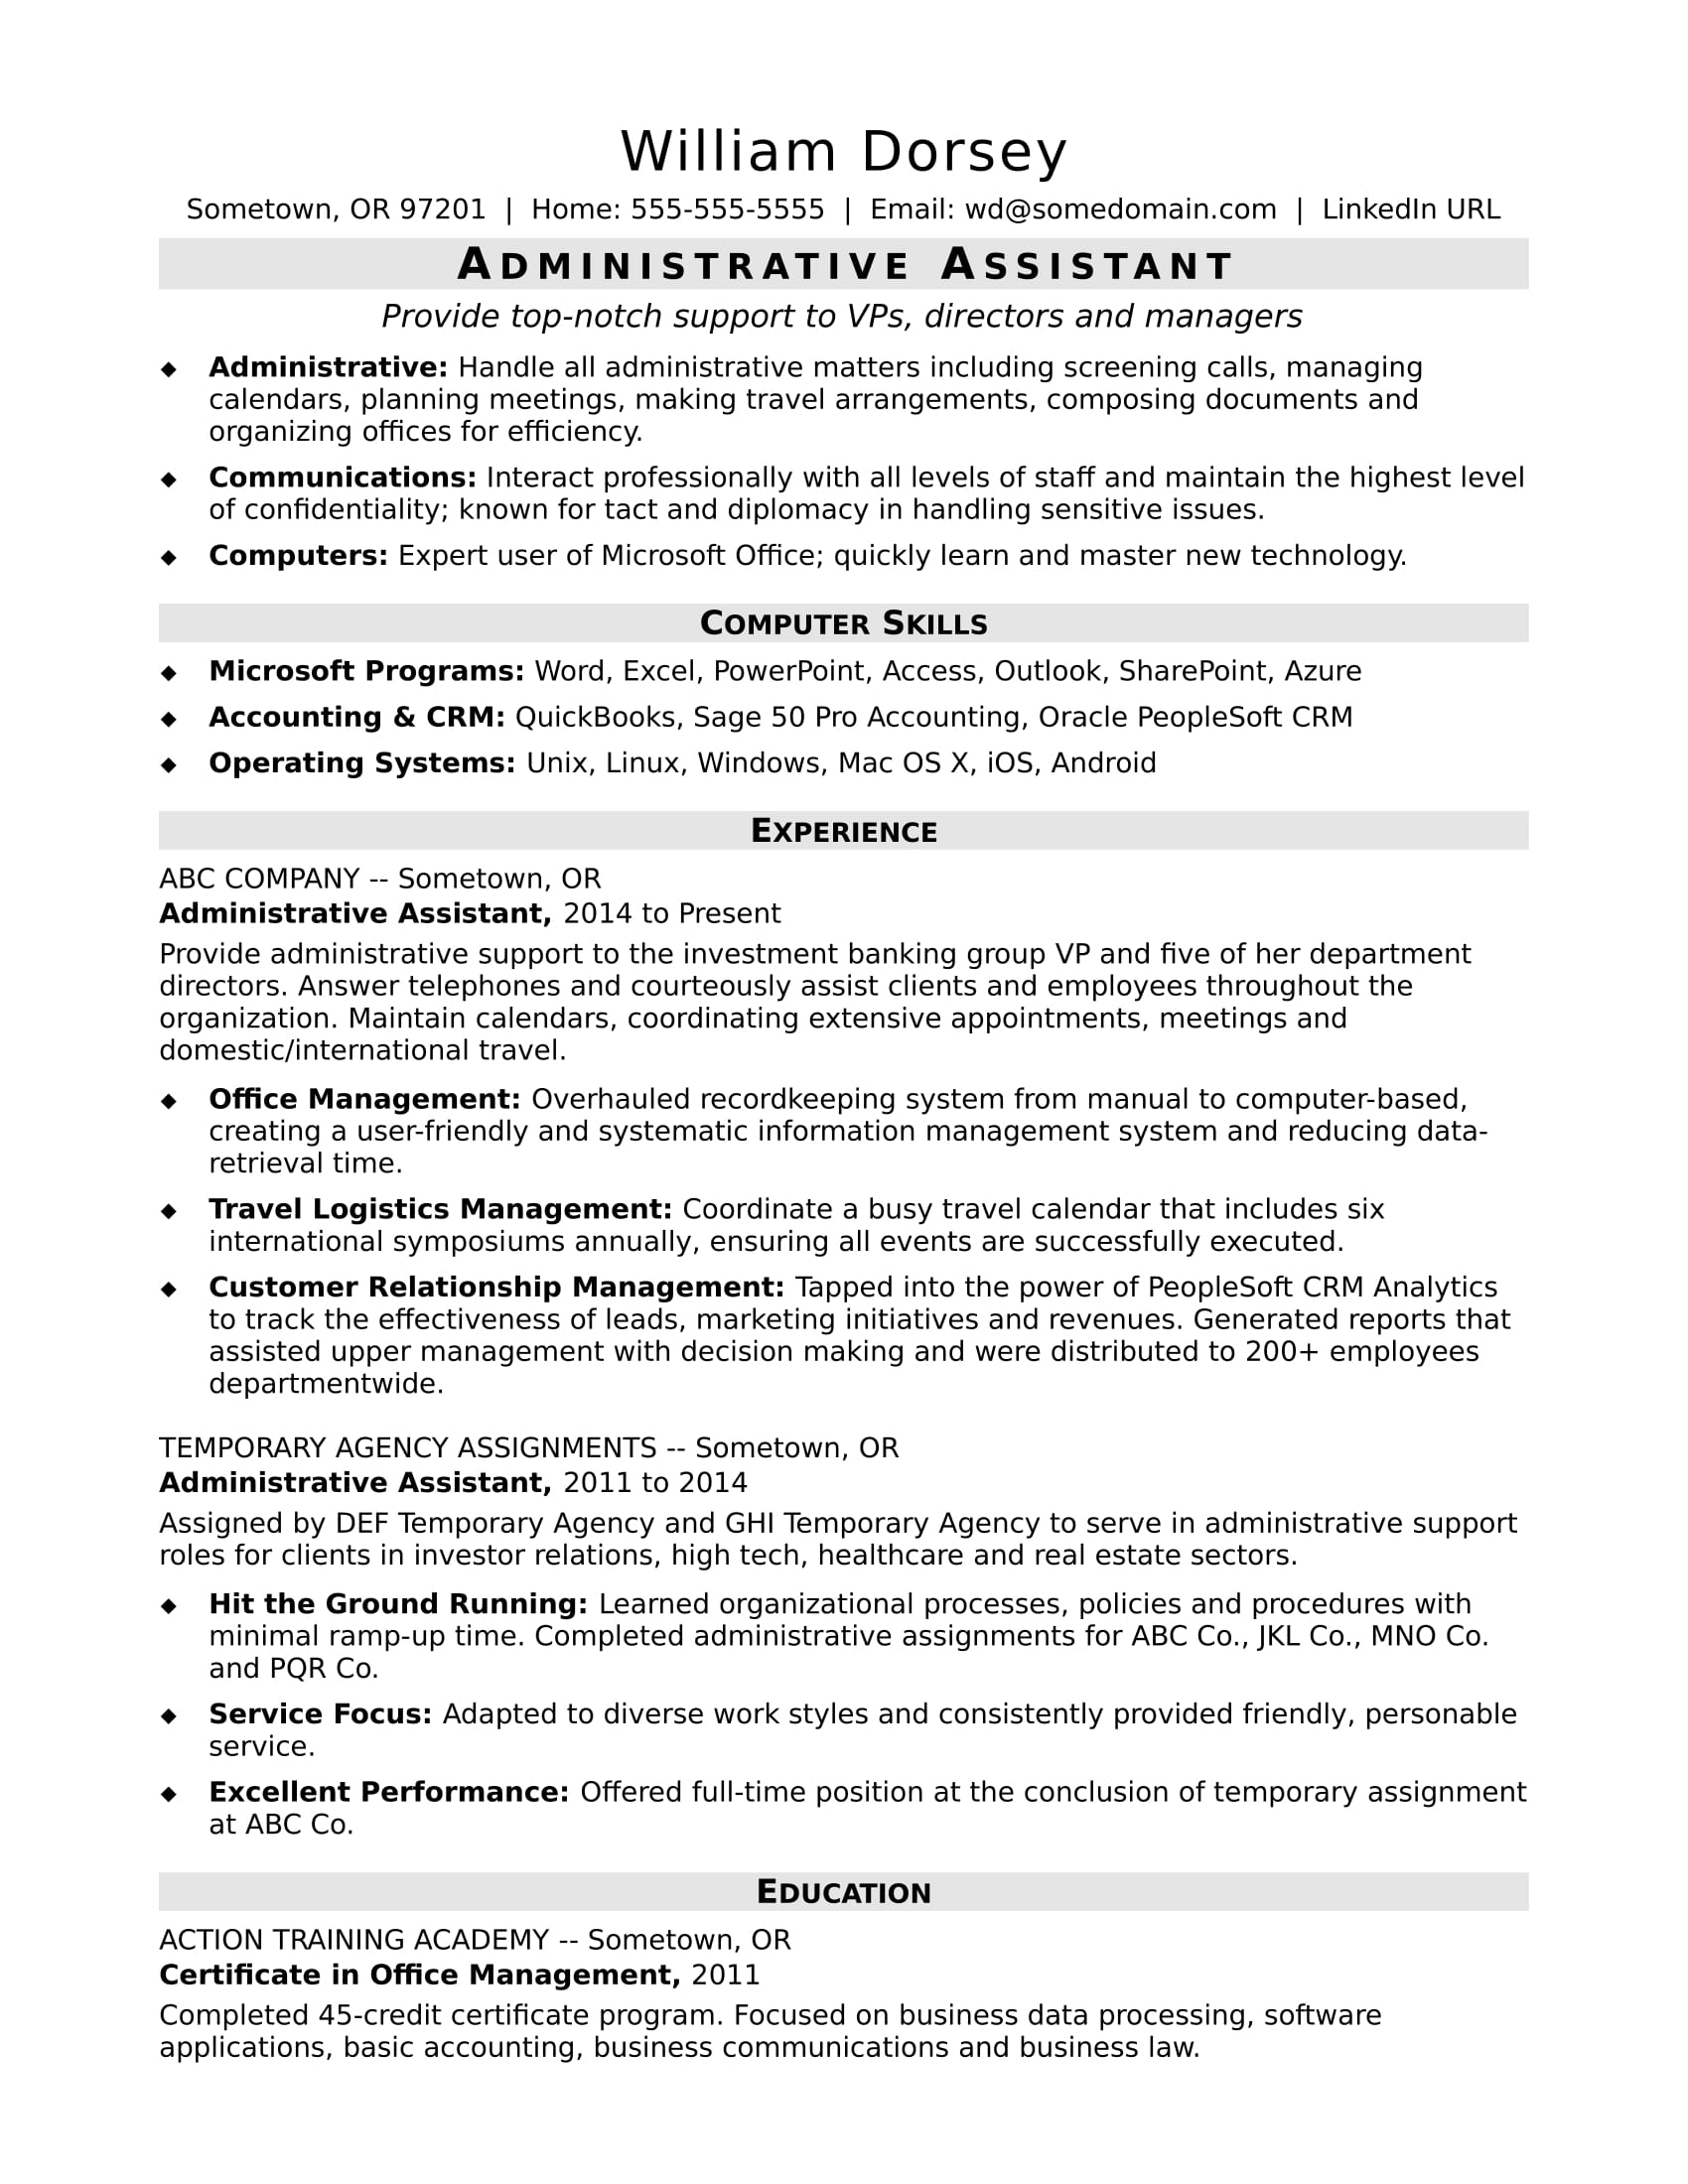 Sample Resume For A Midlevel Administrative Assistant  Sample Administrative Assistant Resumes